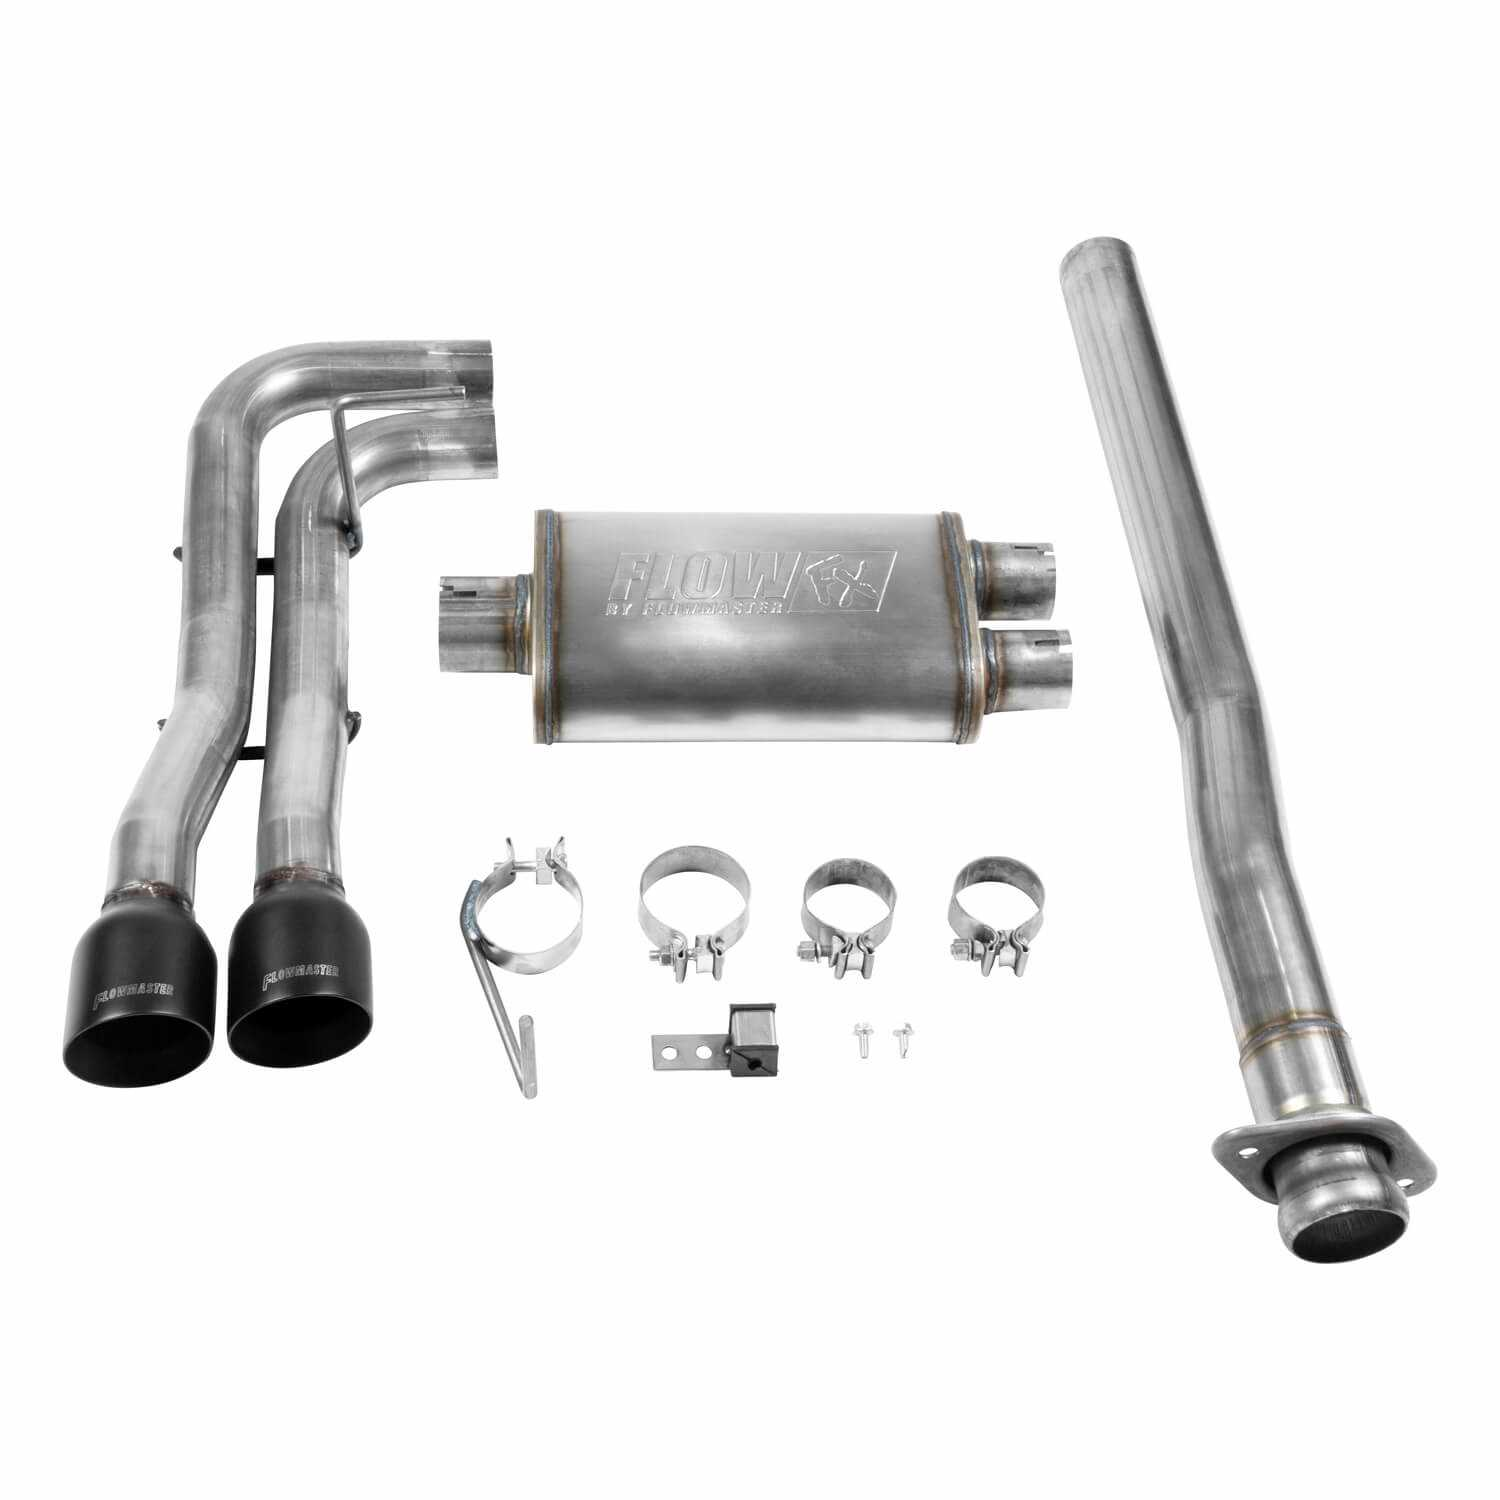 717785 Flowmaster FlowFX Cat-Back Exhaust System